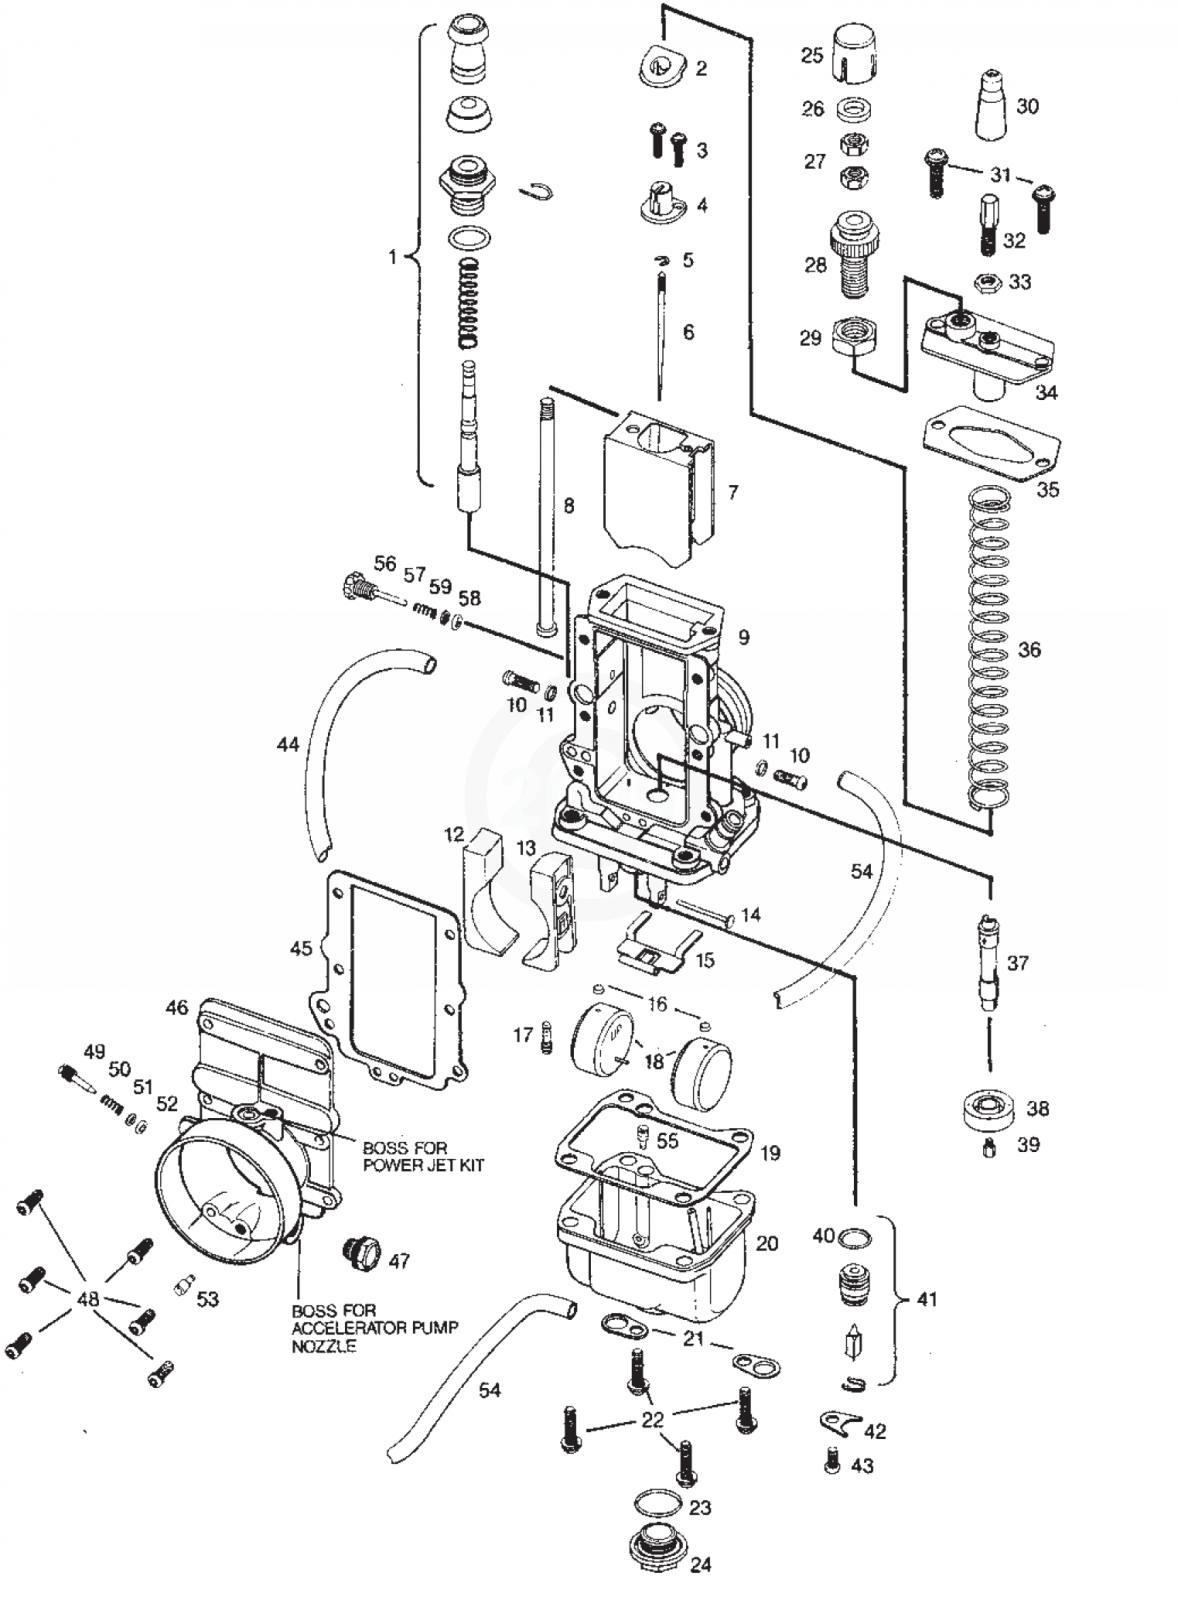 Mikuni Carburetor Identification http://www.woodwardspecialties.com/Mikuni-TM-FLAT-SLIDE-CARBURETOR-detail.htm?productId=9028660